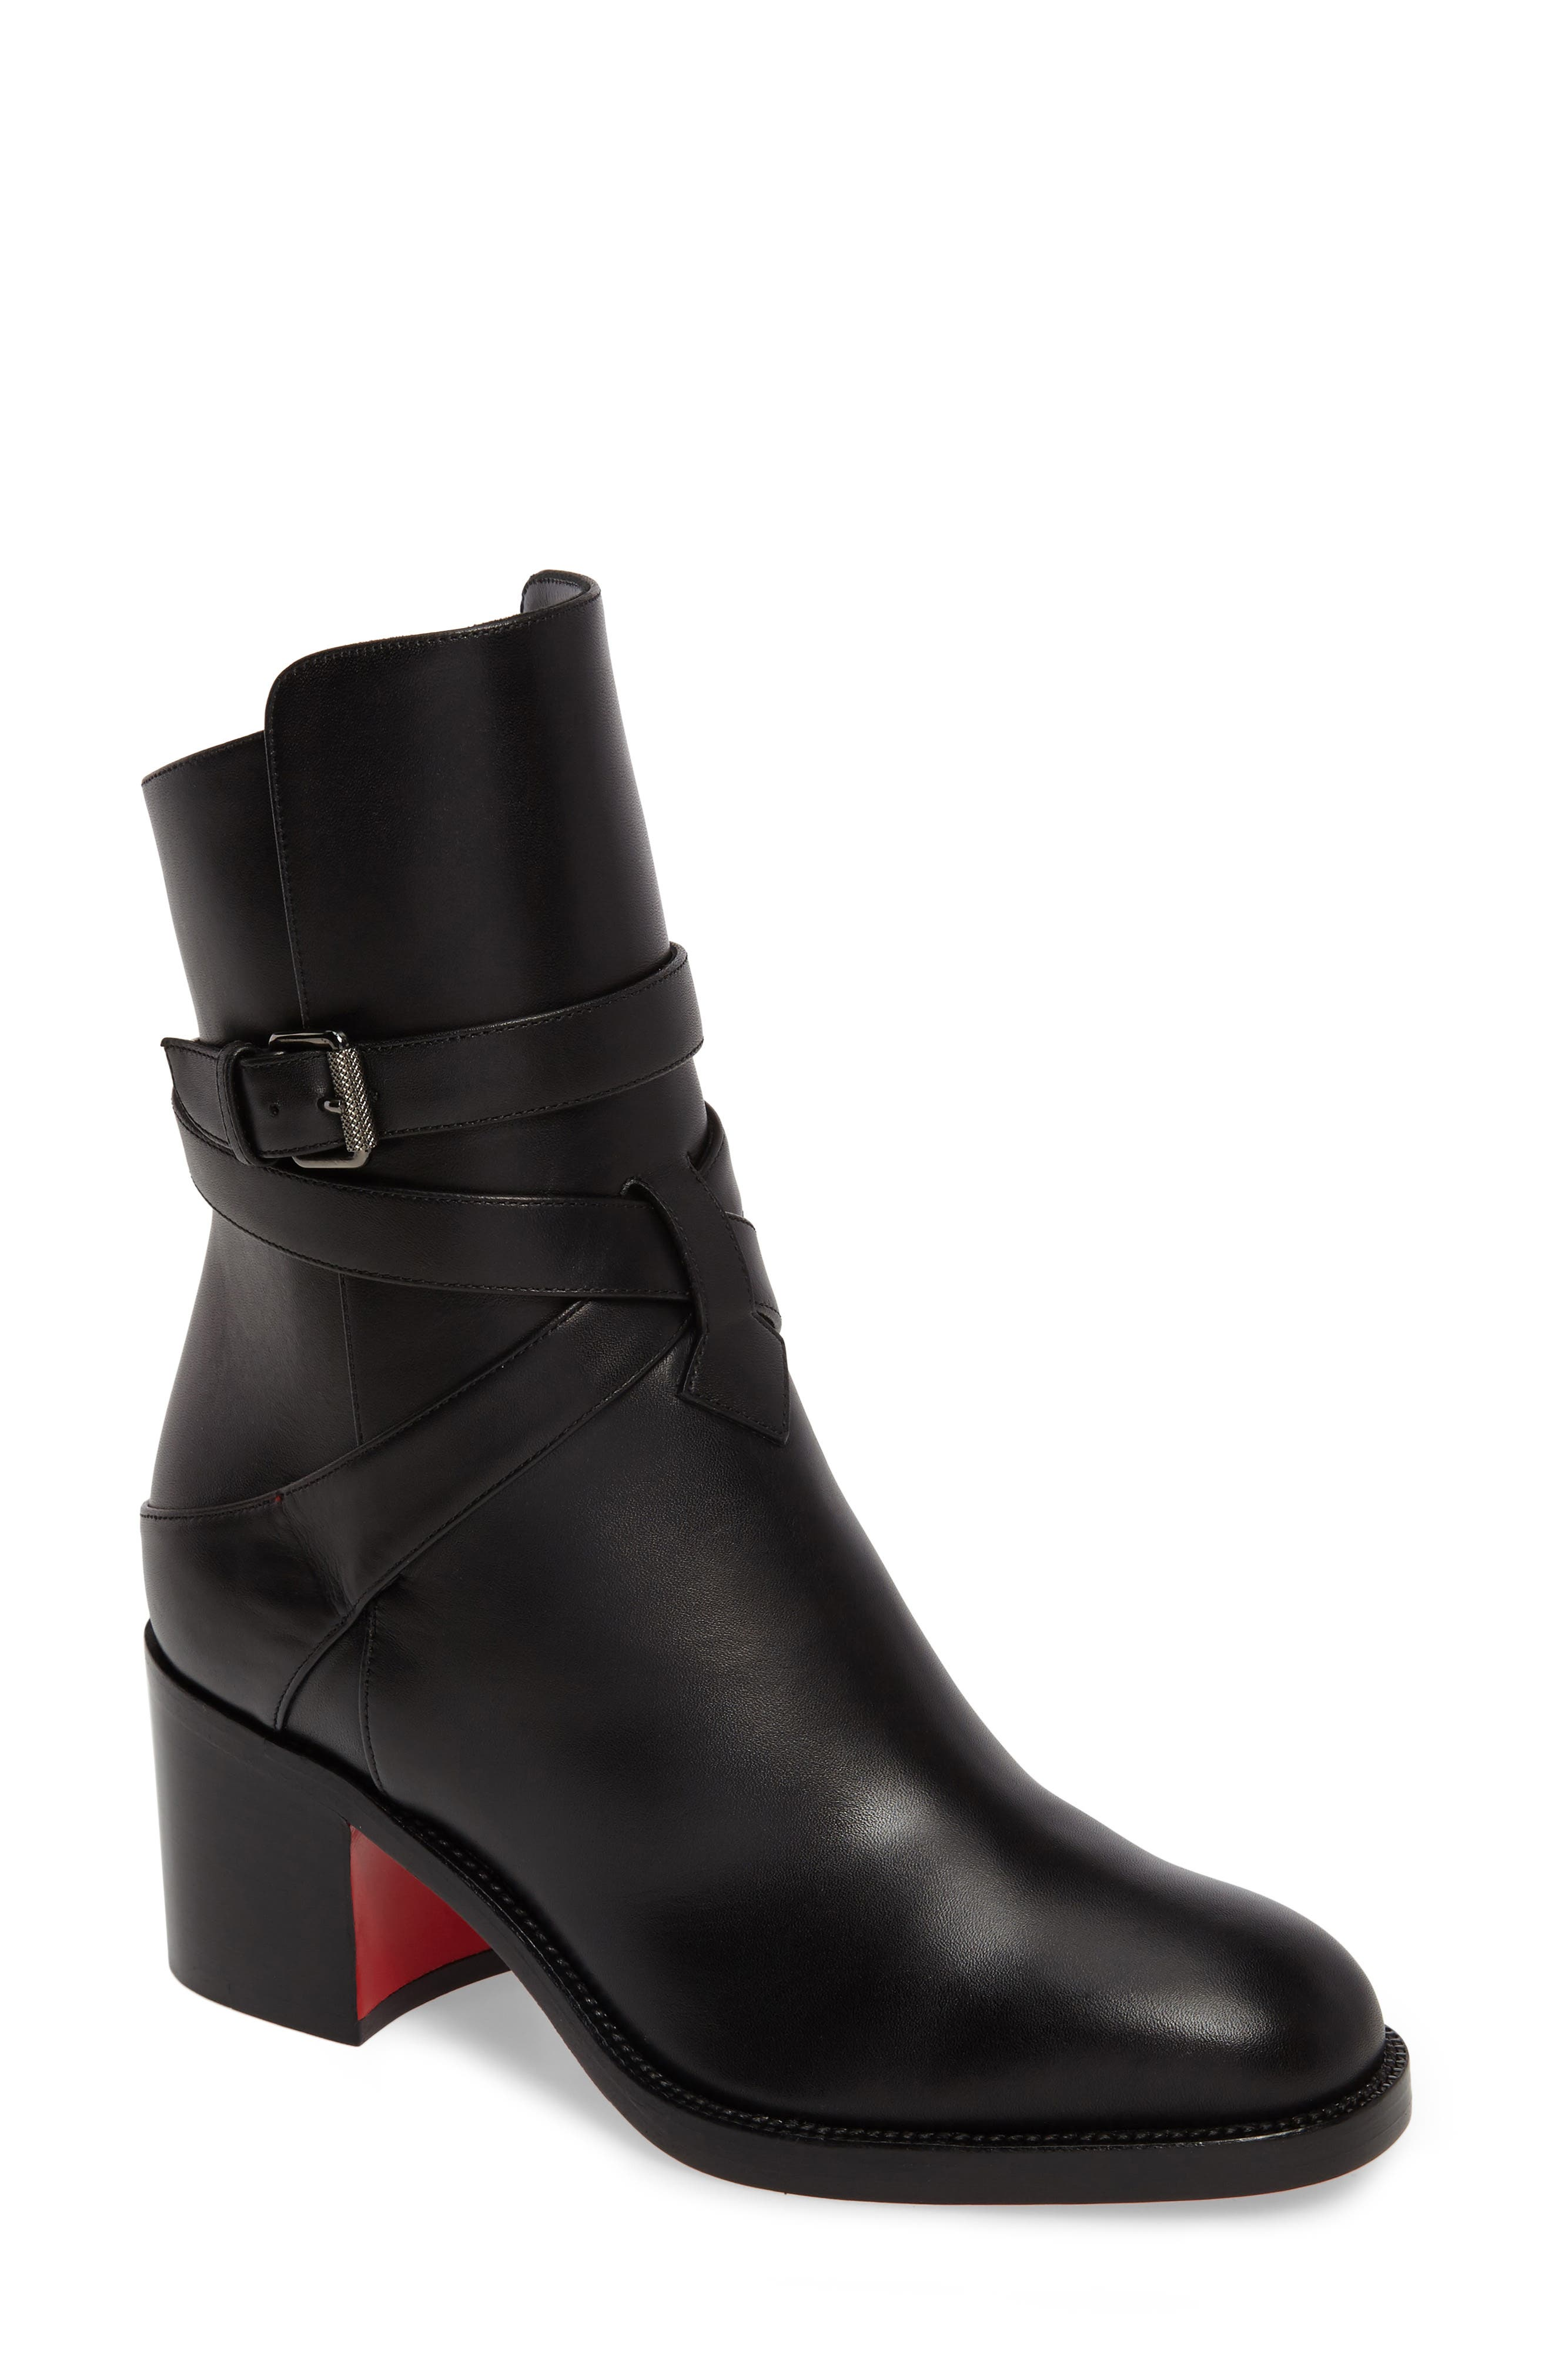 christian louboutin boots nordstrom